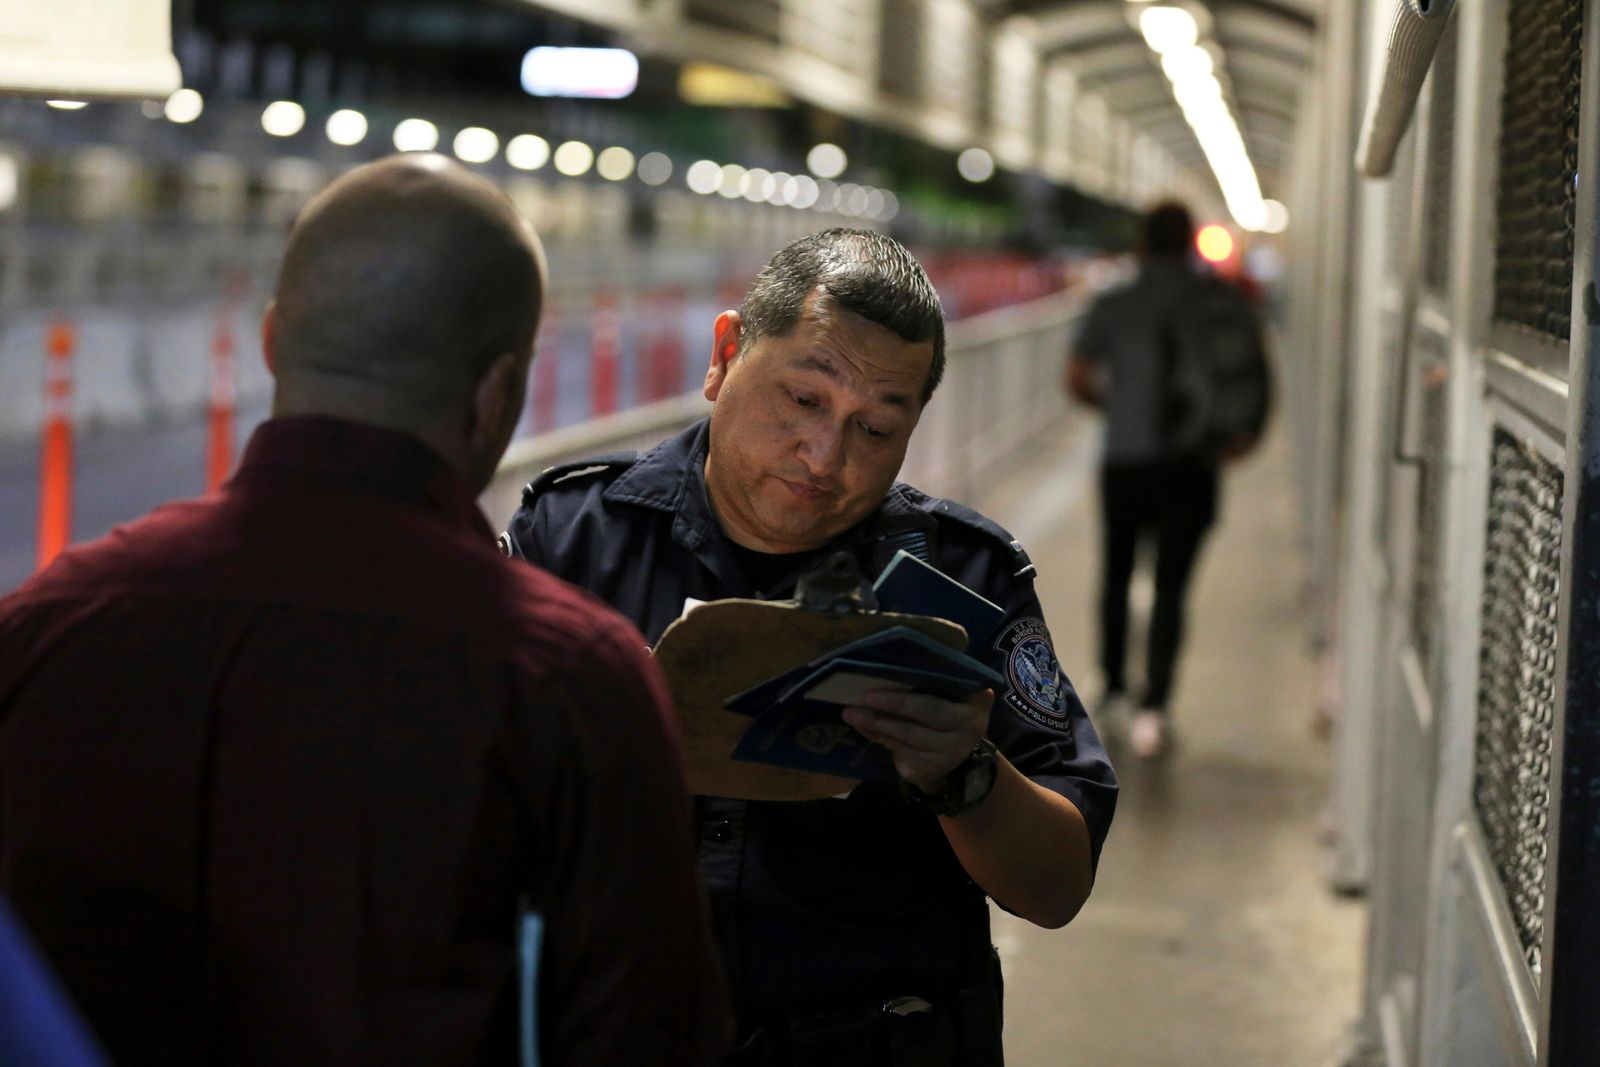 A U.S. Customs and Border Protection officer checks the documents of migrants who are on their way to apply for asylum in the United States, on International Bridge 1 as they depart Nuevo Laredo, Mexico, early Tuesday, Sept. 17, 2019.{ } (AP Photo/Fernando Llano)